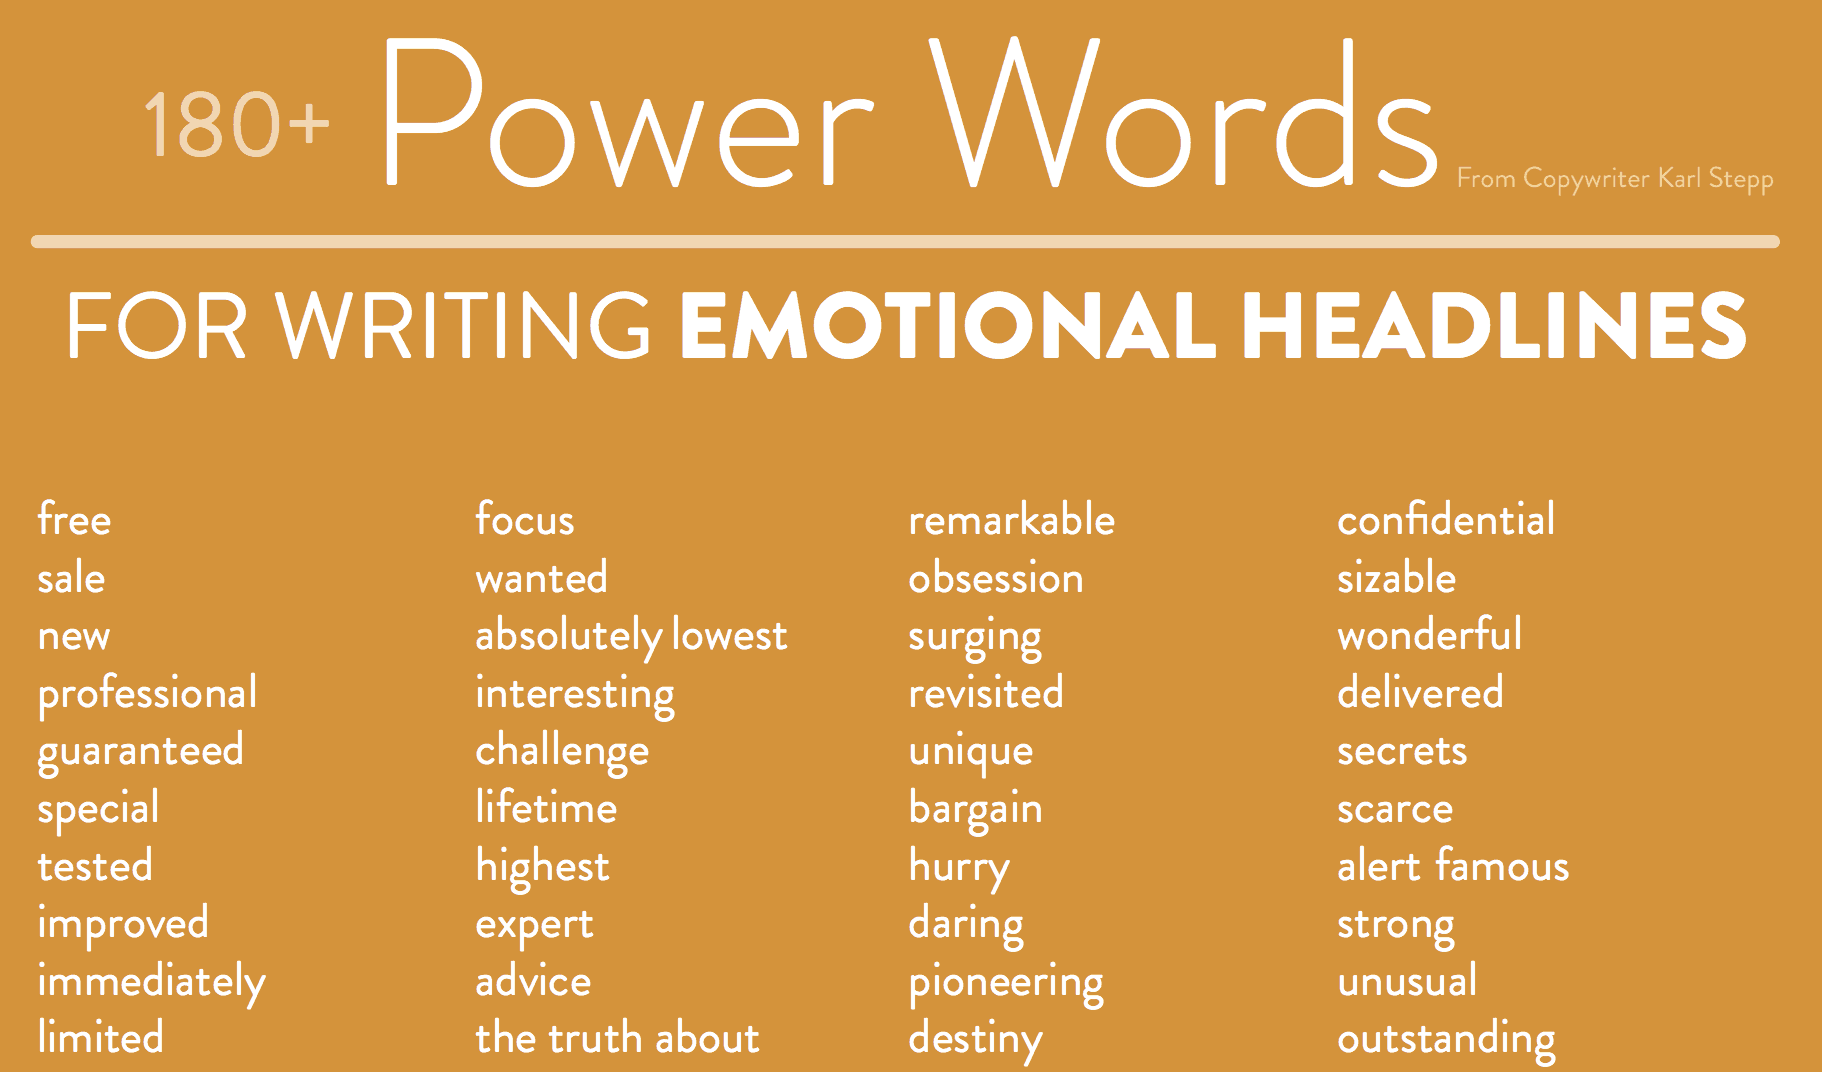 180+ Power Words for Writing Emotional Headlines